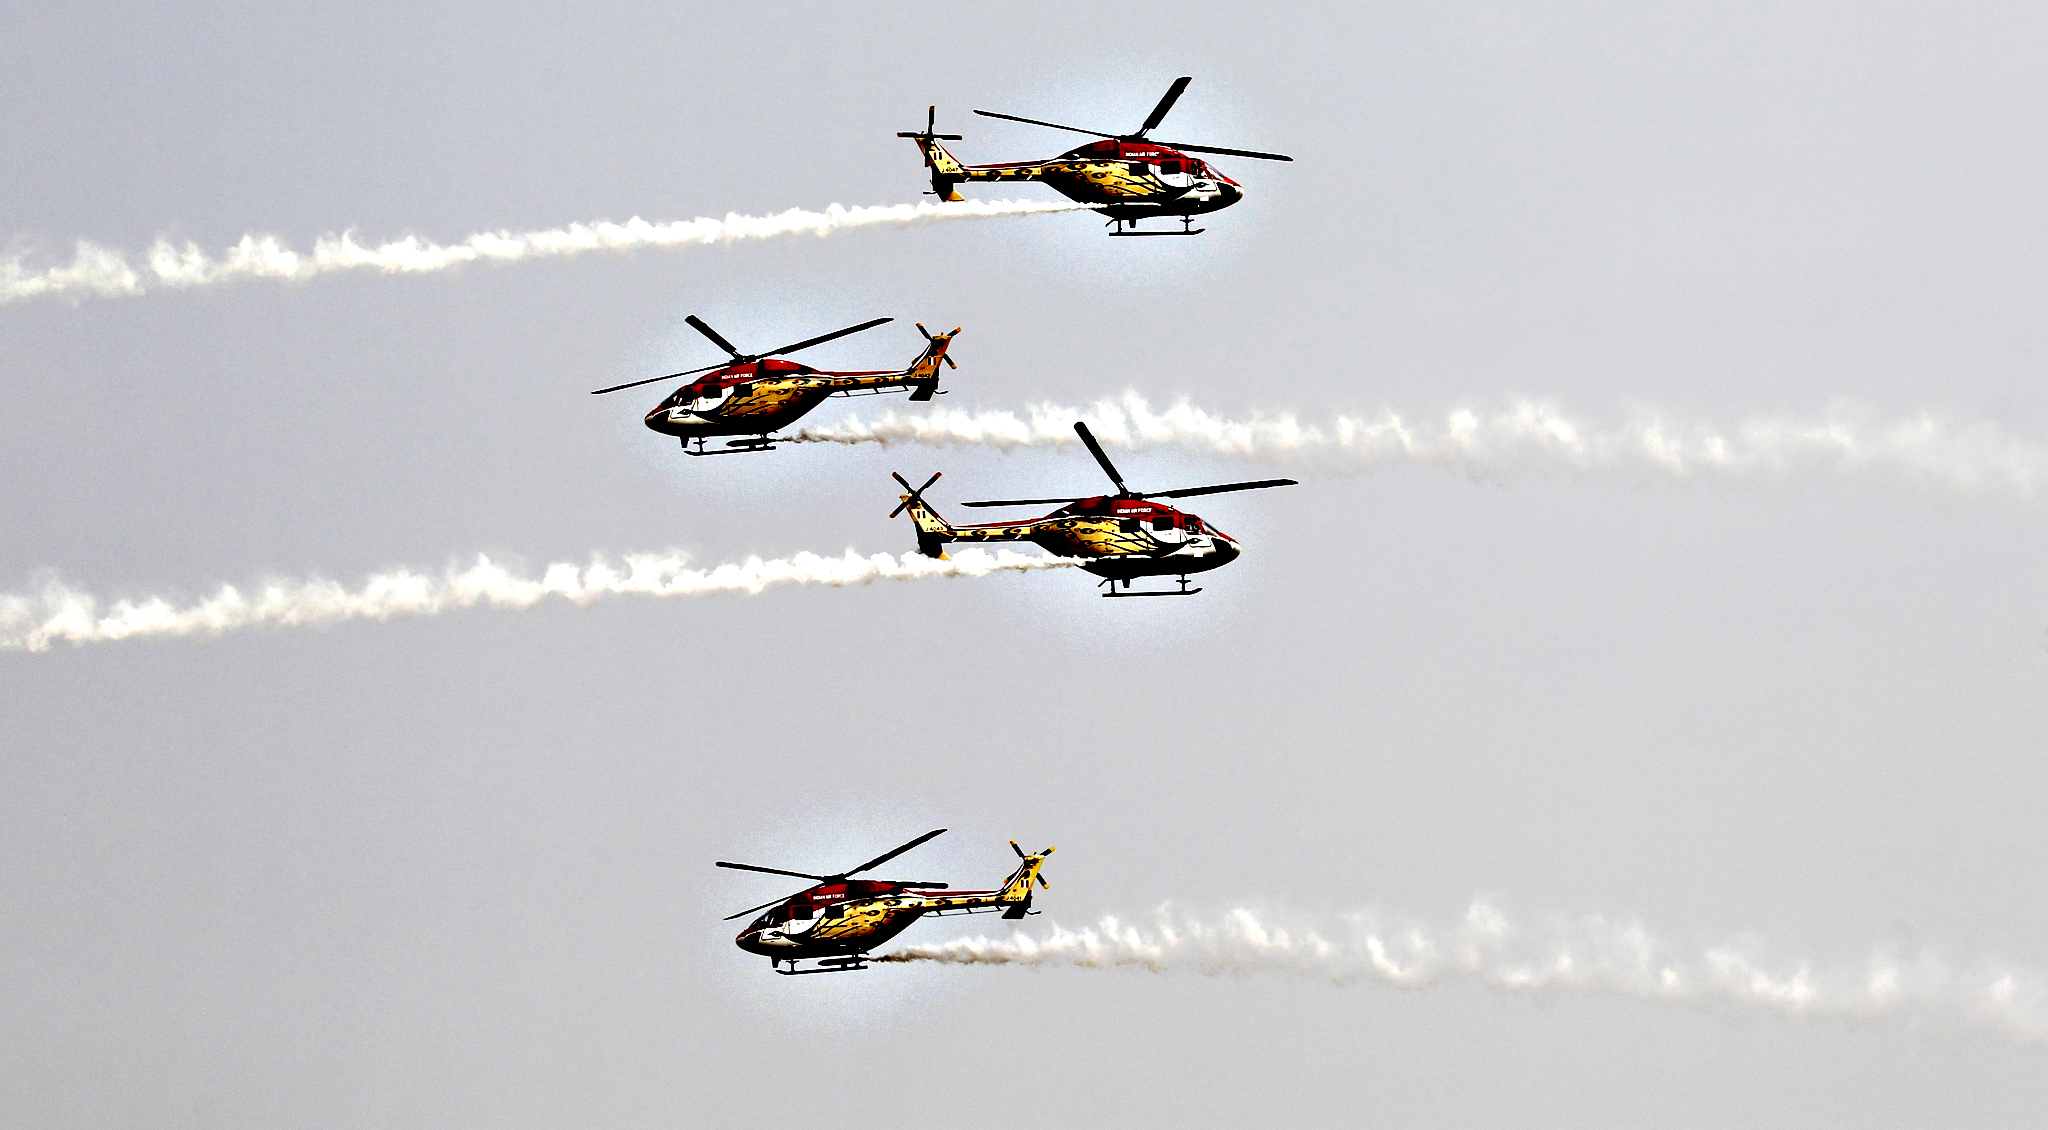 "Indian Air Force ""Sarang"" helicopter display team performs during the Indian Air Force Day celebrations at the Hindon air force station on the outskirts of New Delhi...Indian Air Force ""Sarang"" helicopter display team performs during the Indian Air Force Day celebrations at the Hindon air force station on the outskirts of New Delhi October 8, 2013. The IAF celebrated its 81st anniversary on Tuesday."